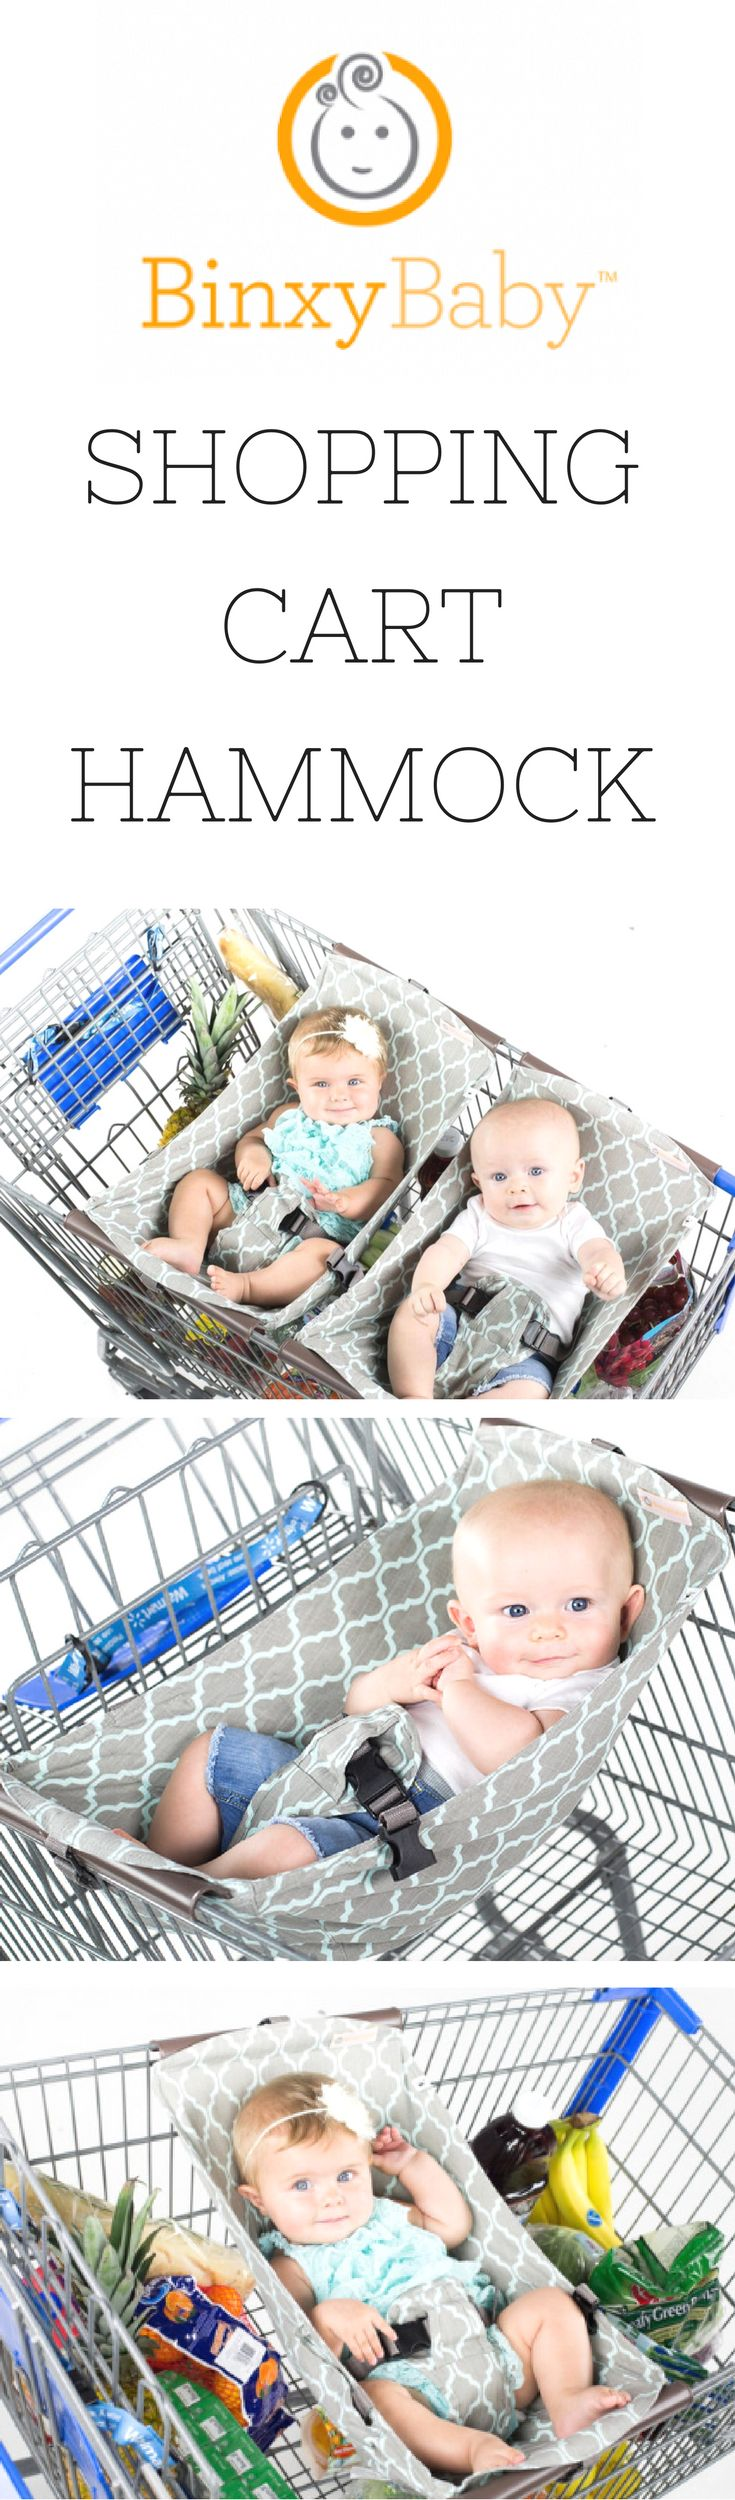 Binxy Shopping Cart Hammock is perfect for little ones (even twins) at the grocery store. A total must have item for parents. There are 4 different patterns @ Fab Baby Gear for $64.99 each.